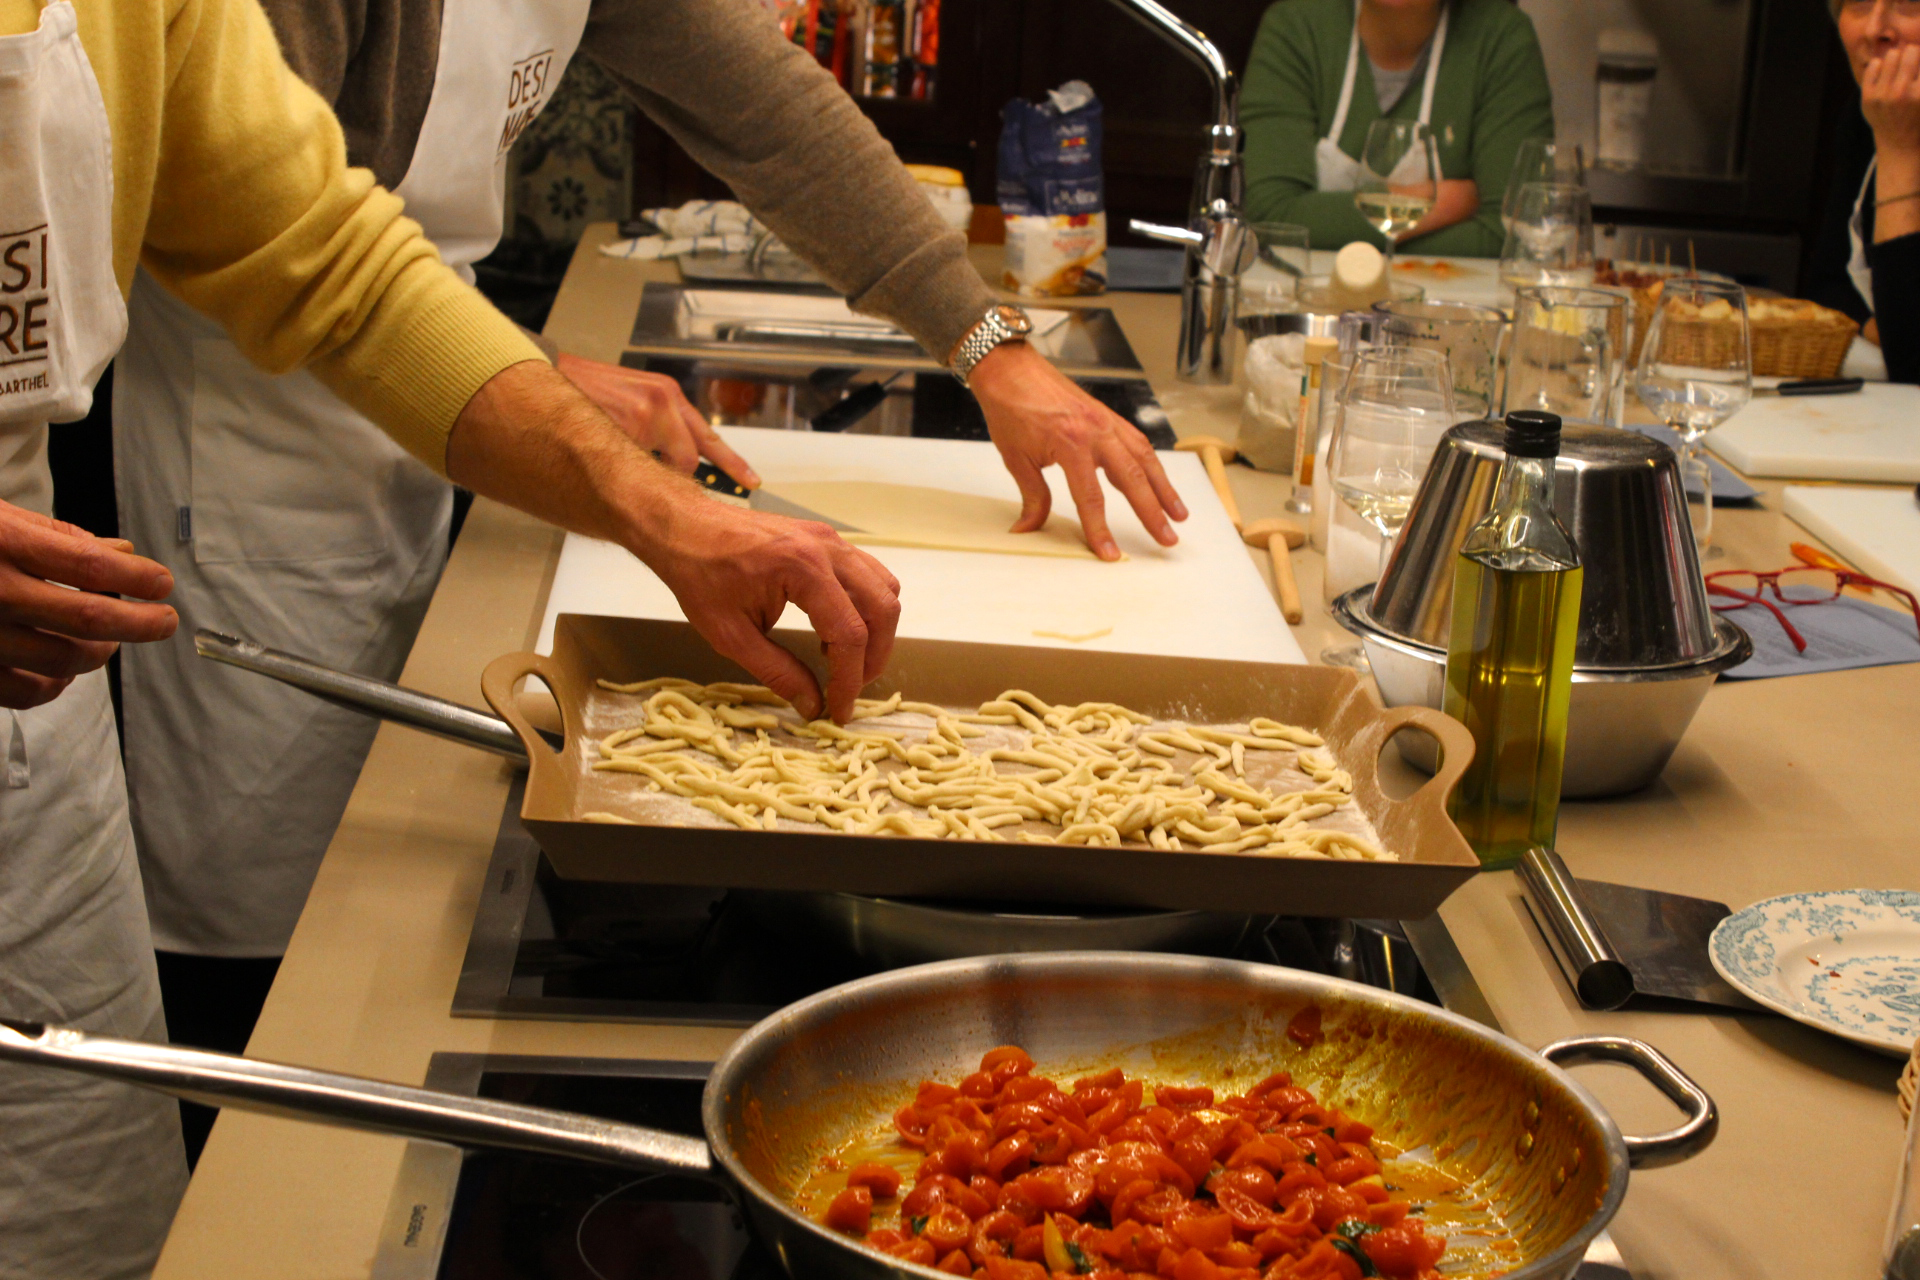 All together, making strozzapreti pasta